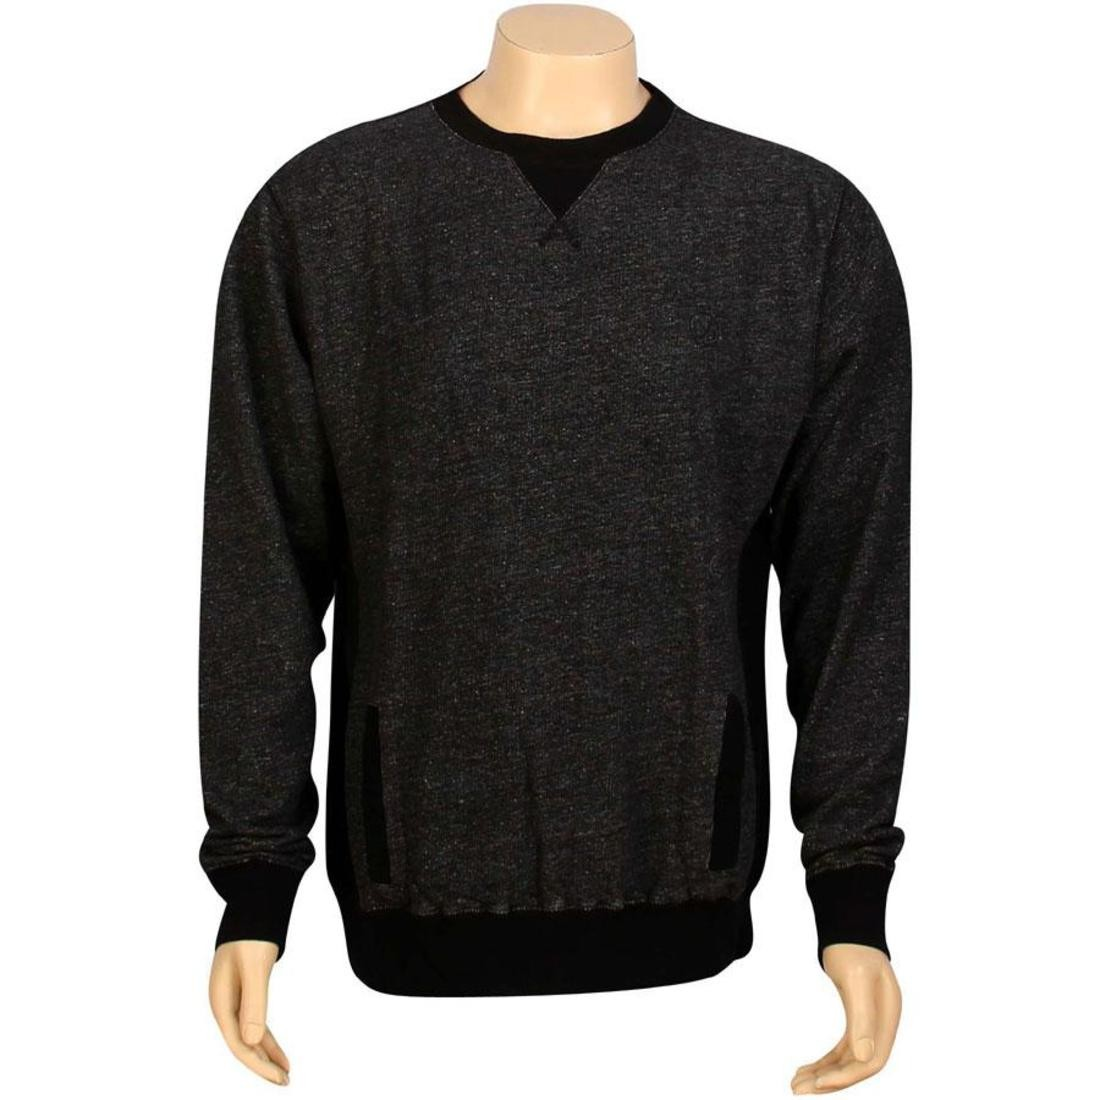 【海外限定】クラシック フリース トップス Tシャツ BLACK【 JSLV JSLV トップス CLASSIC FLEECE CREWNECK BLACK】, EMC:542cf6b5 --- officewill.xsrv.jp